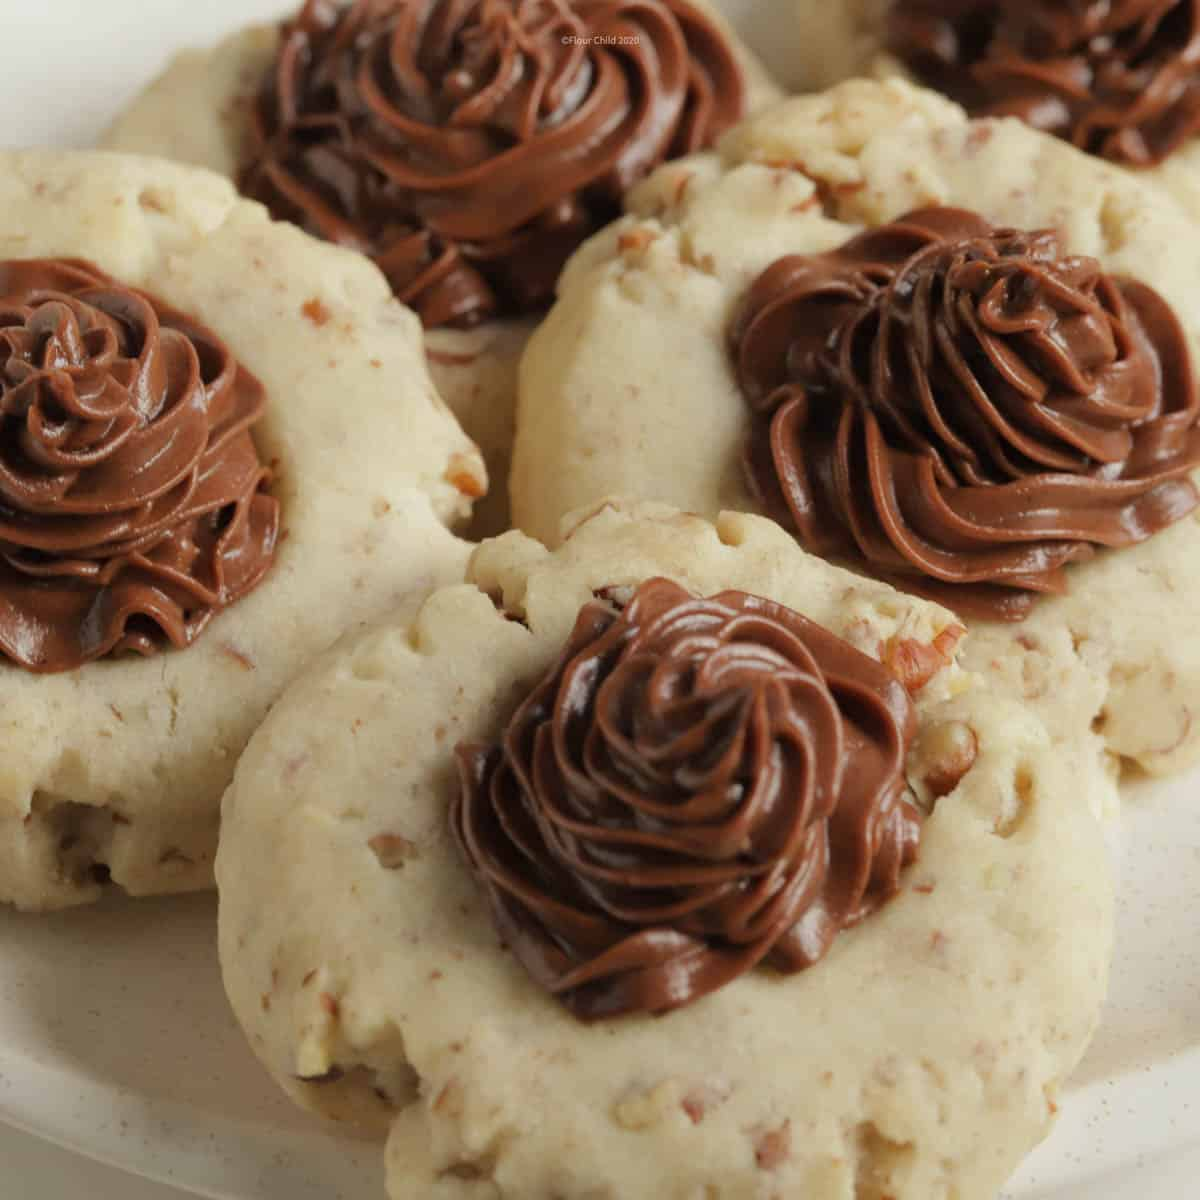 Three chocolate frosted pecan cookies on a plate